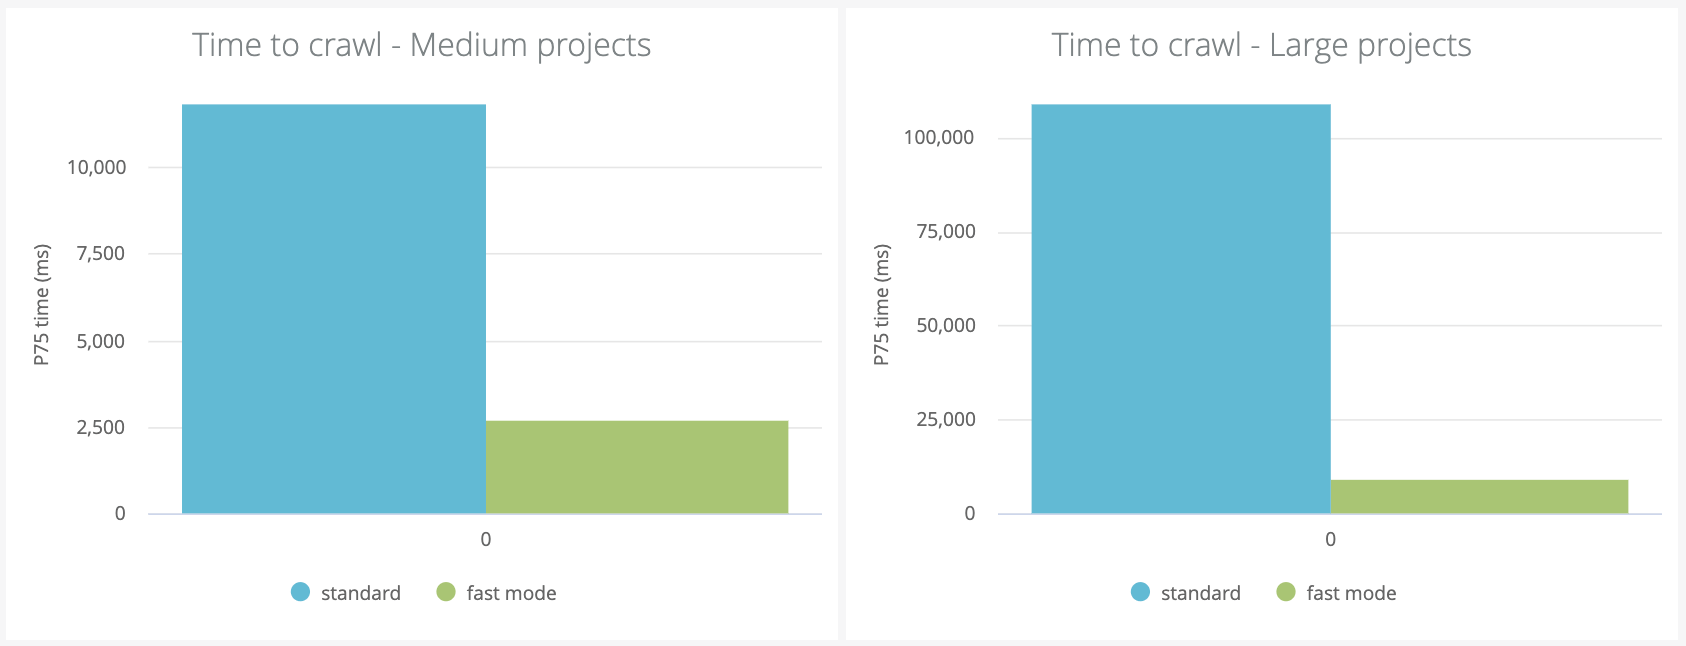 Medium to large projects are crawled six times quicker using fast mode.